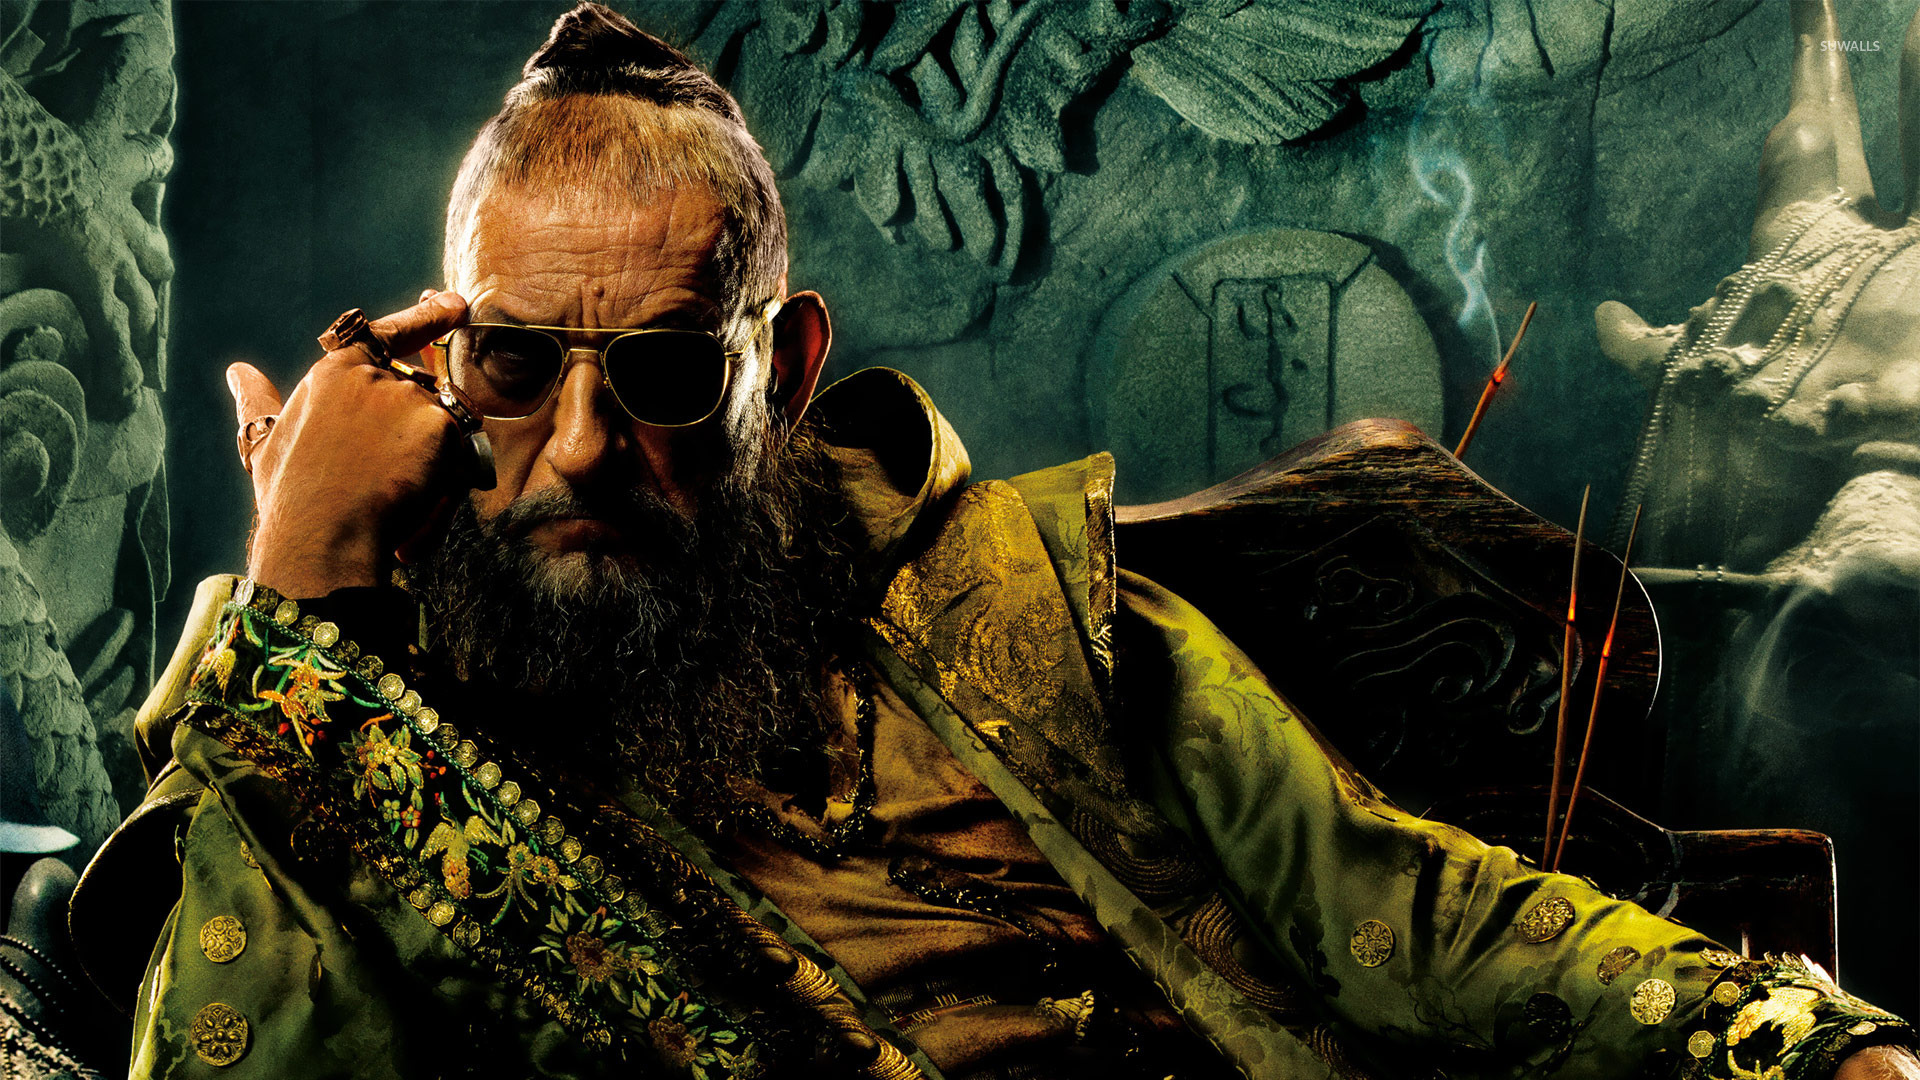 Ben Kingsley as The Mandarin in Iron Man Three (2013)